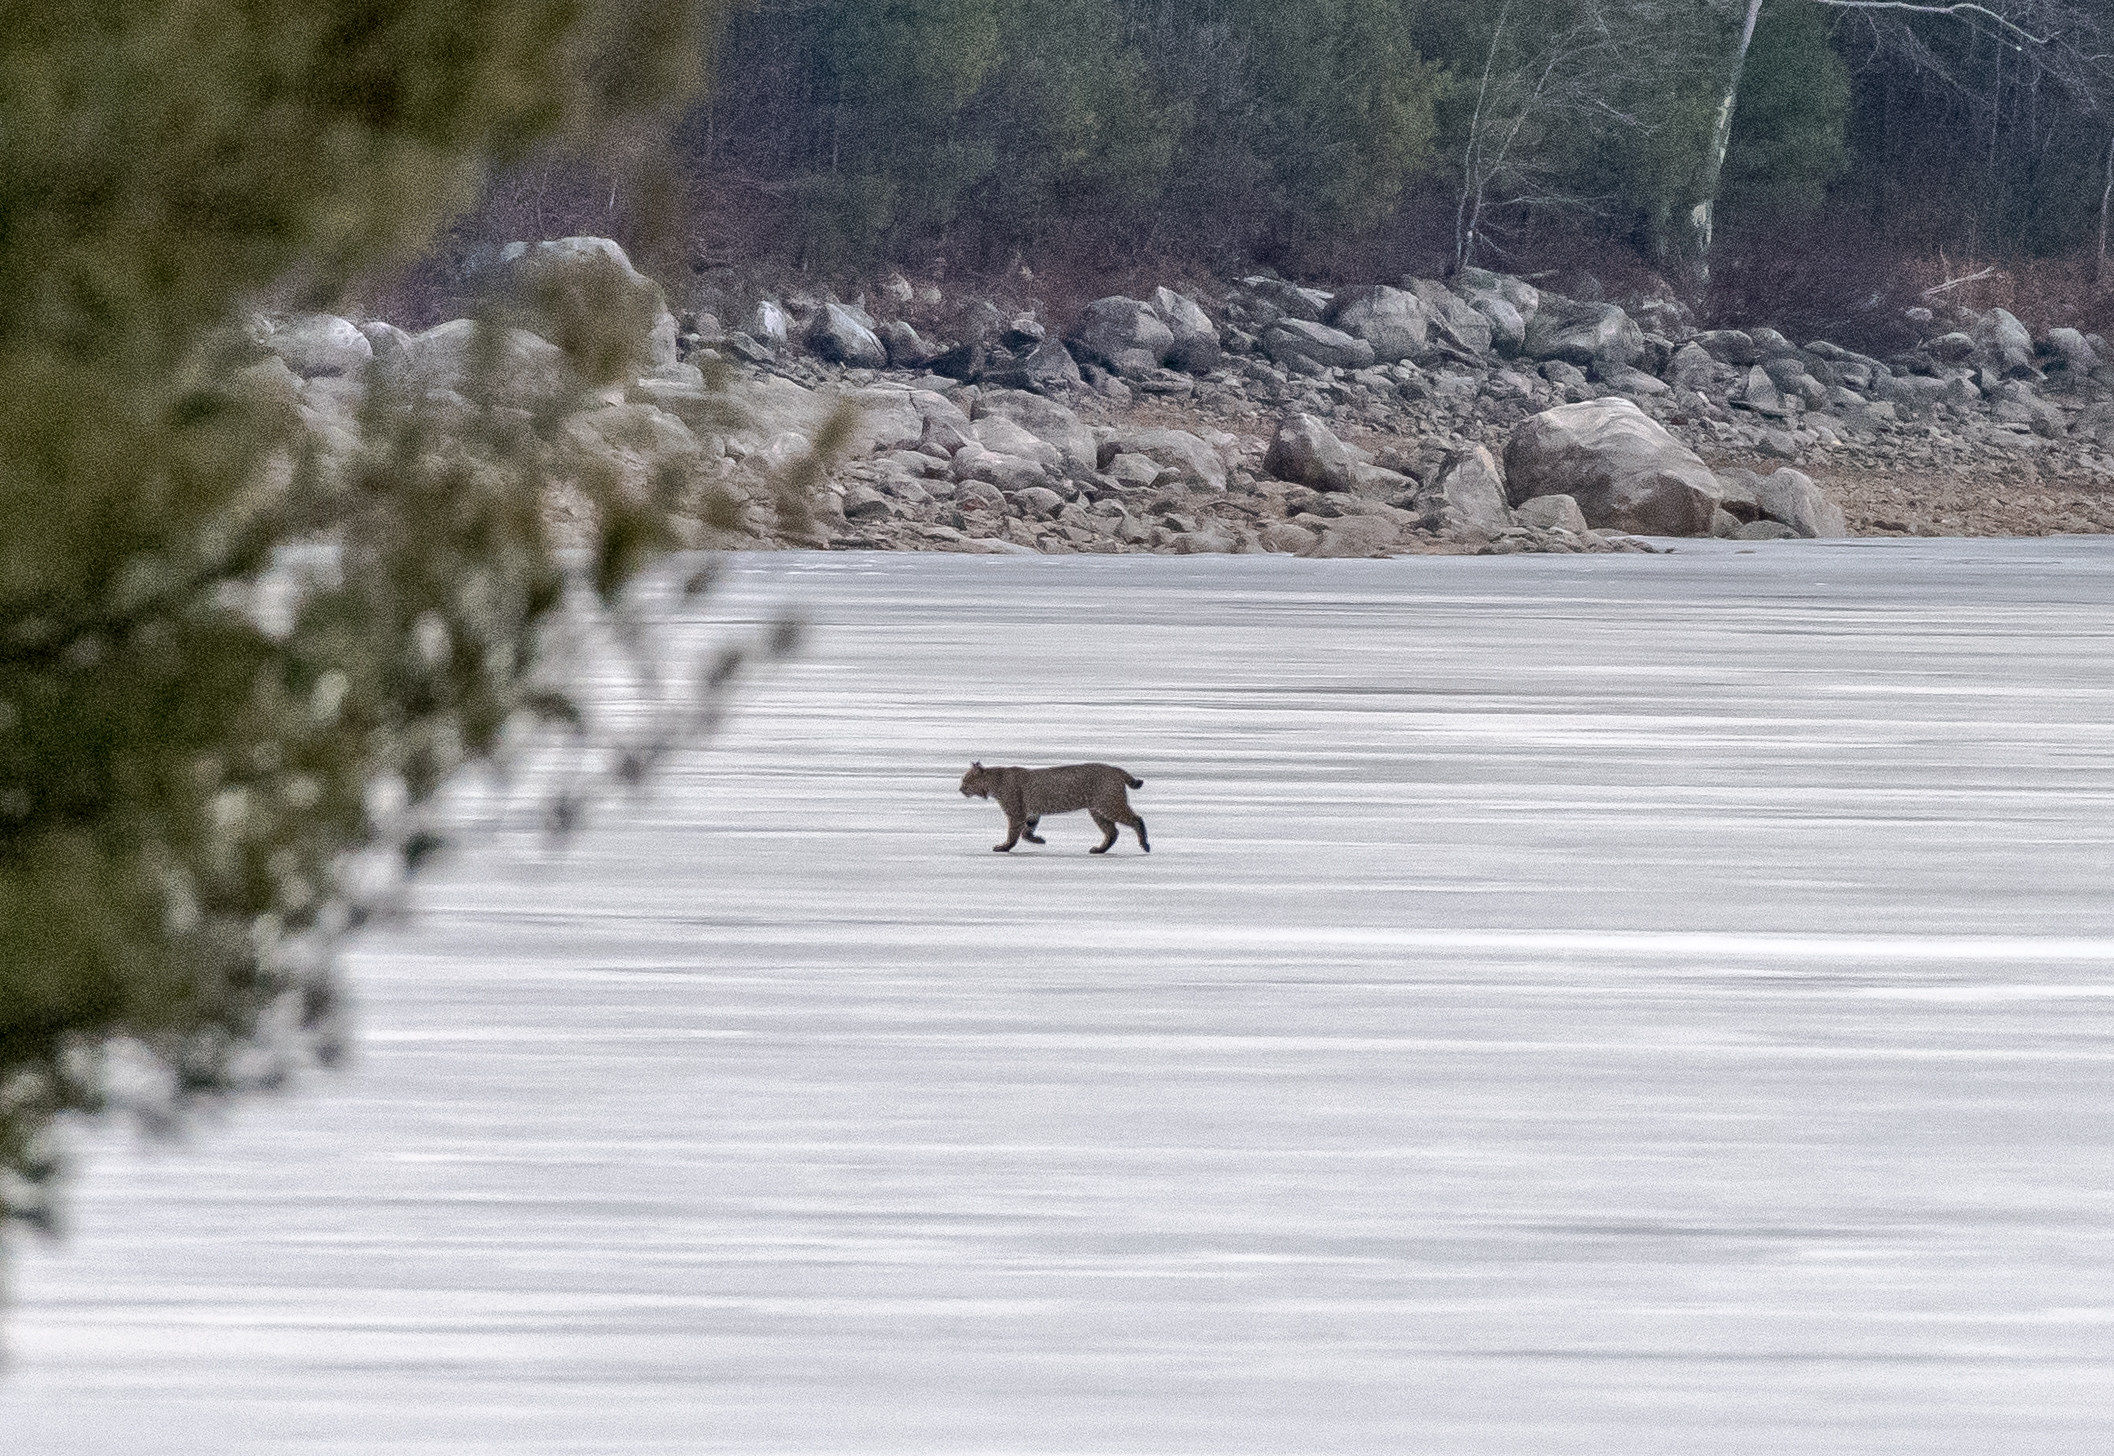 You never know what to expect at Quabbin.  As I  was about to leave this morning a bobcat walked across the ice in front of me!  2/23/16